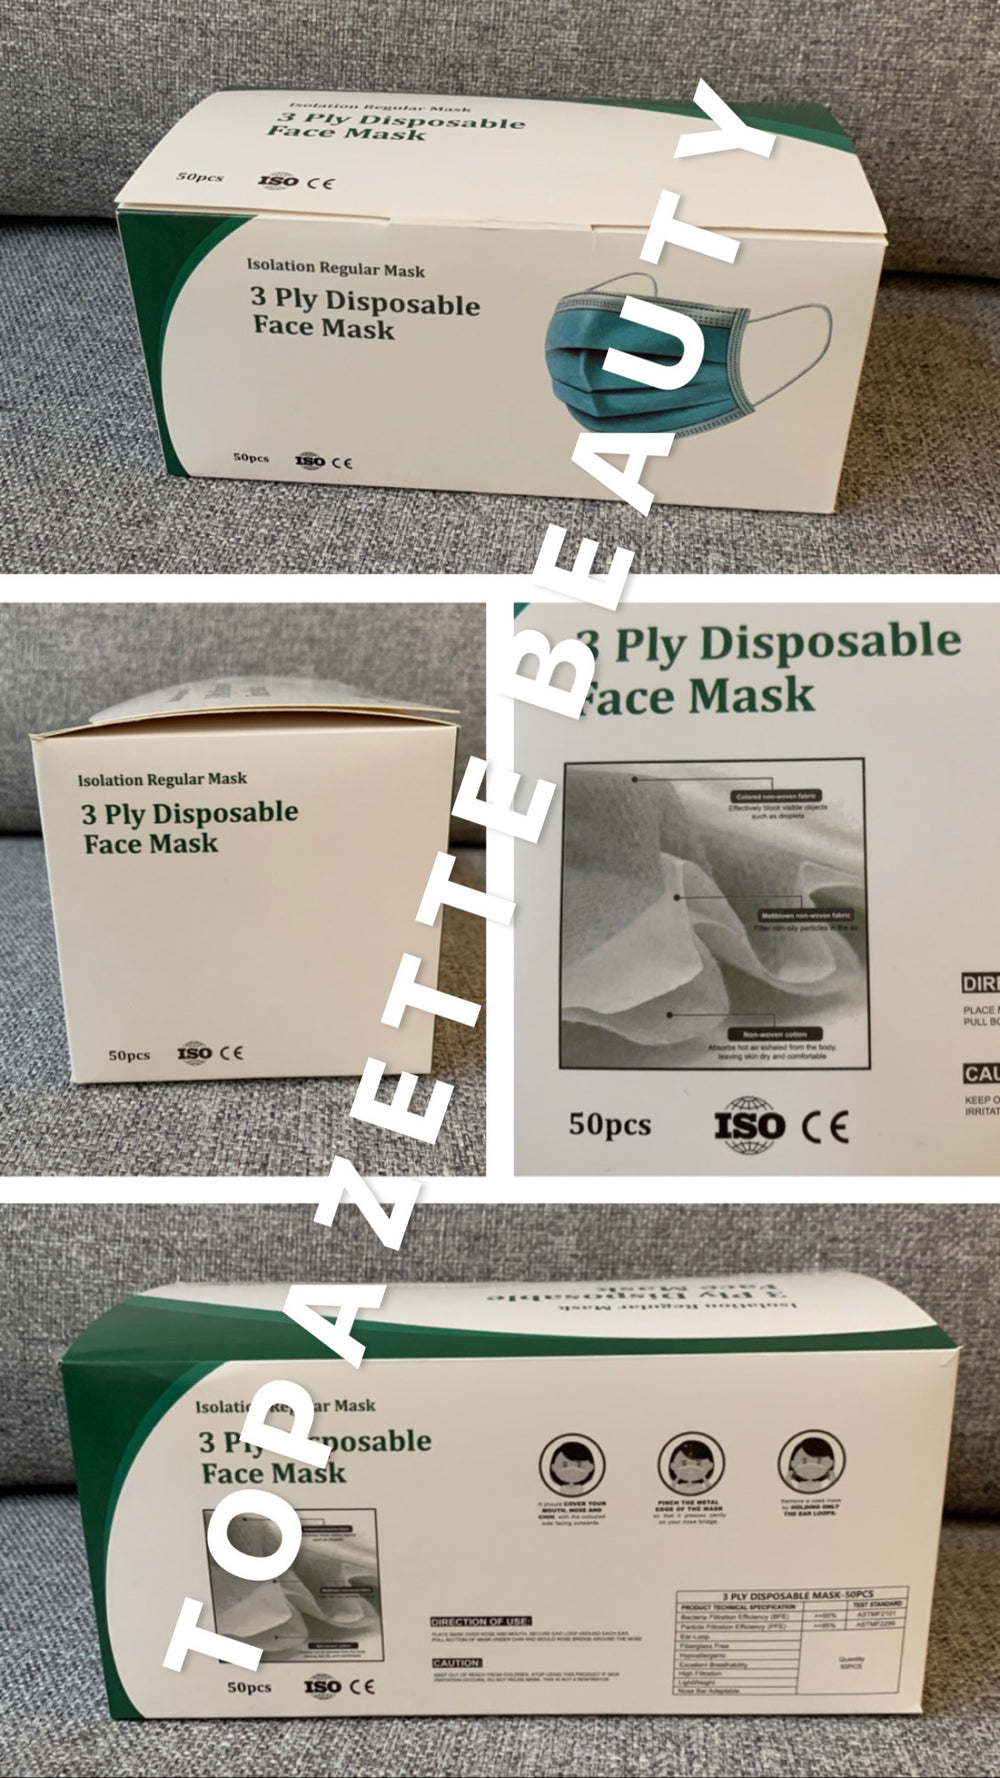 surgical mask singapore, assure mask singapore, 3 ply surgical face mask singapore, 3 ply surgical mask, 3 ply face mask, sensi surgical face mask, 3 ply mask singapore, cheap surgical mask singapore, 3 ply mask, lab med pte ltd, lab med mask, lab med singapore, lab med surgical mask, lab med, label med pte ltd